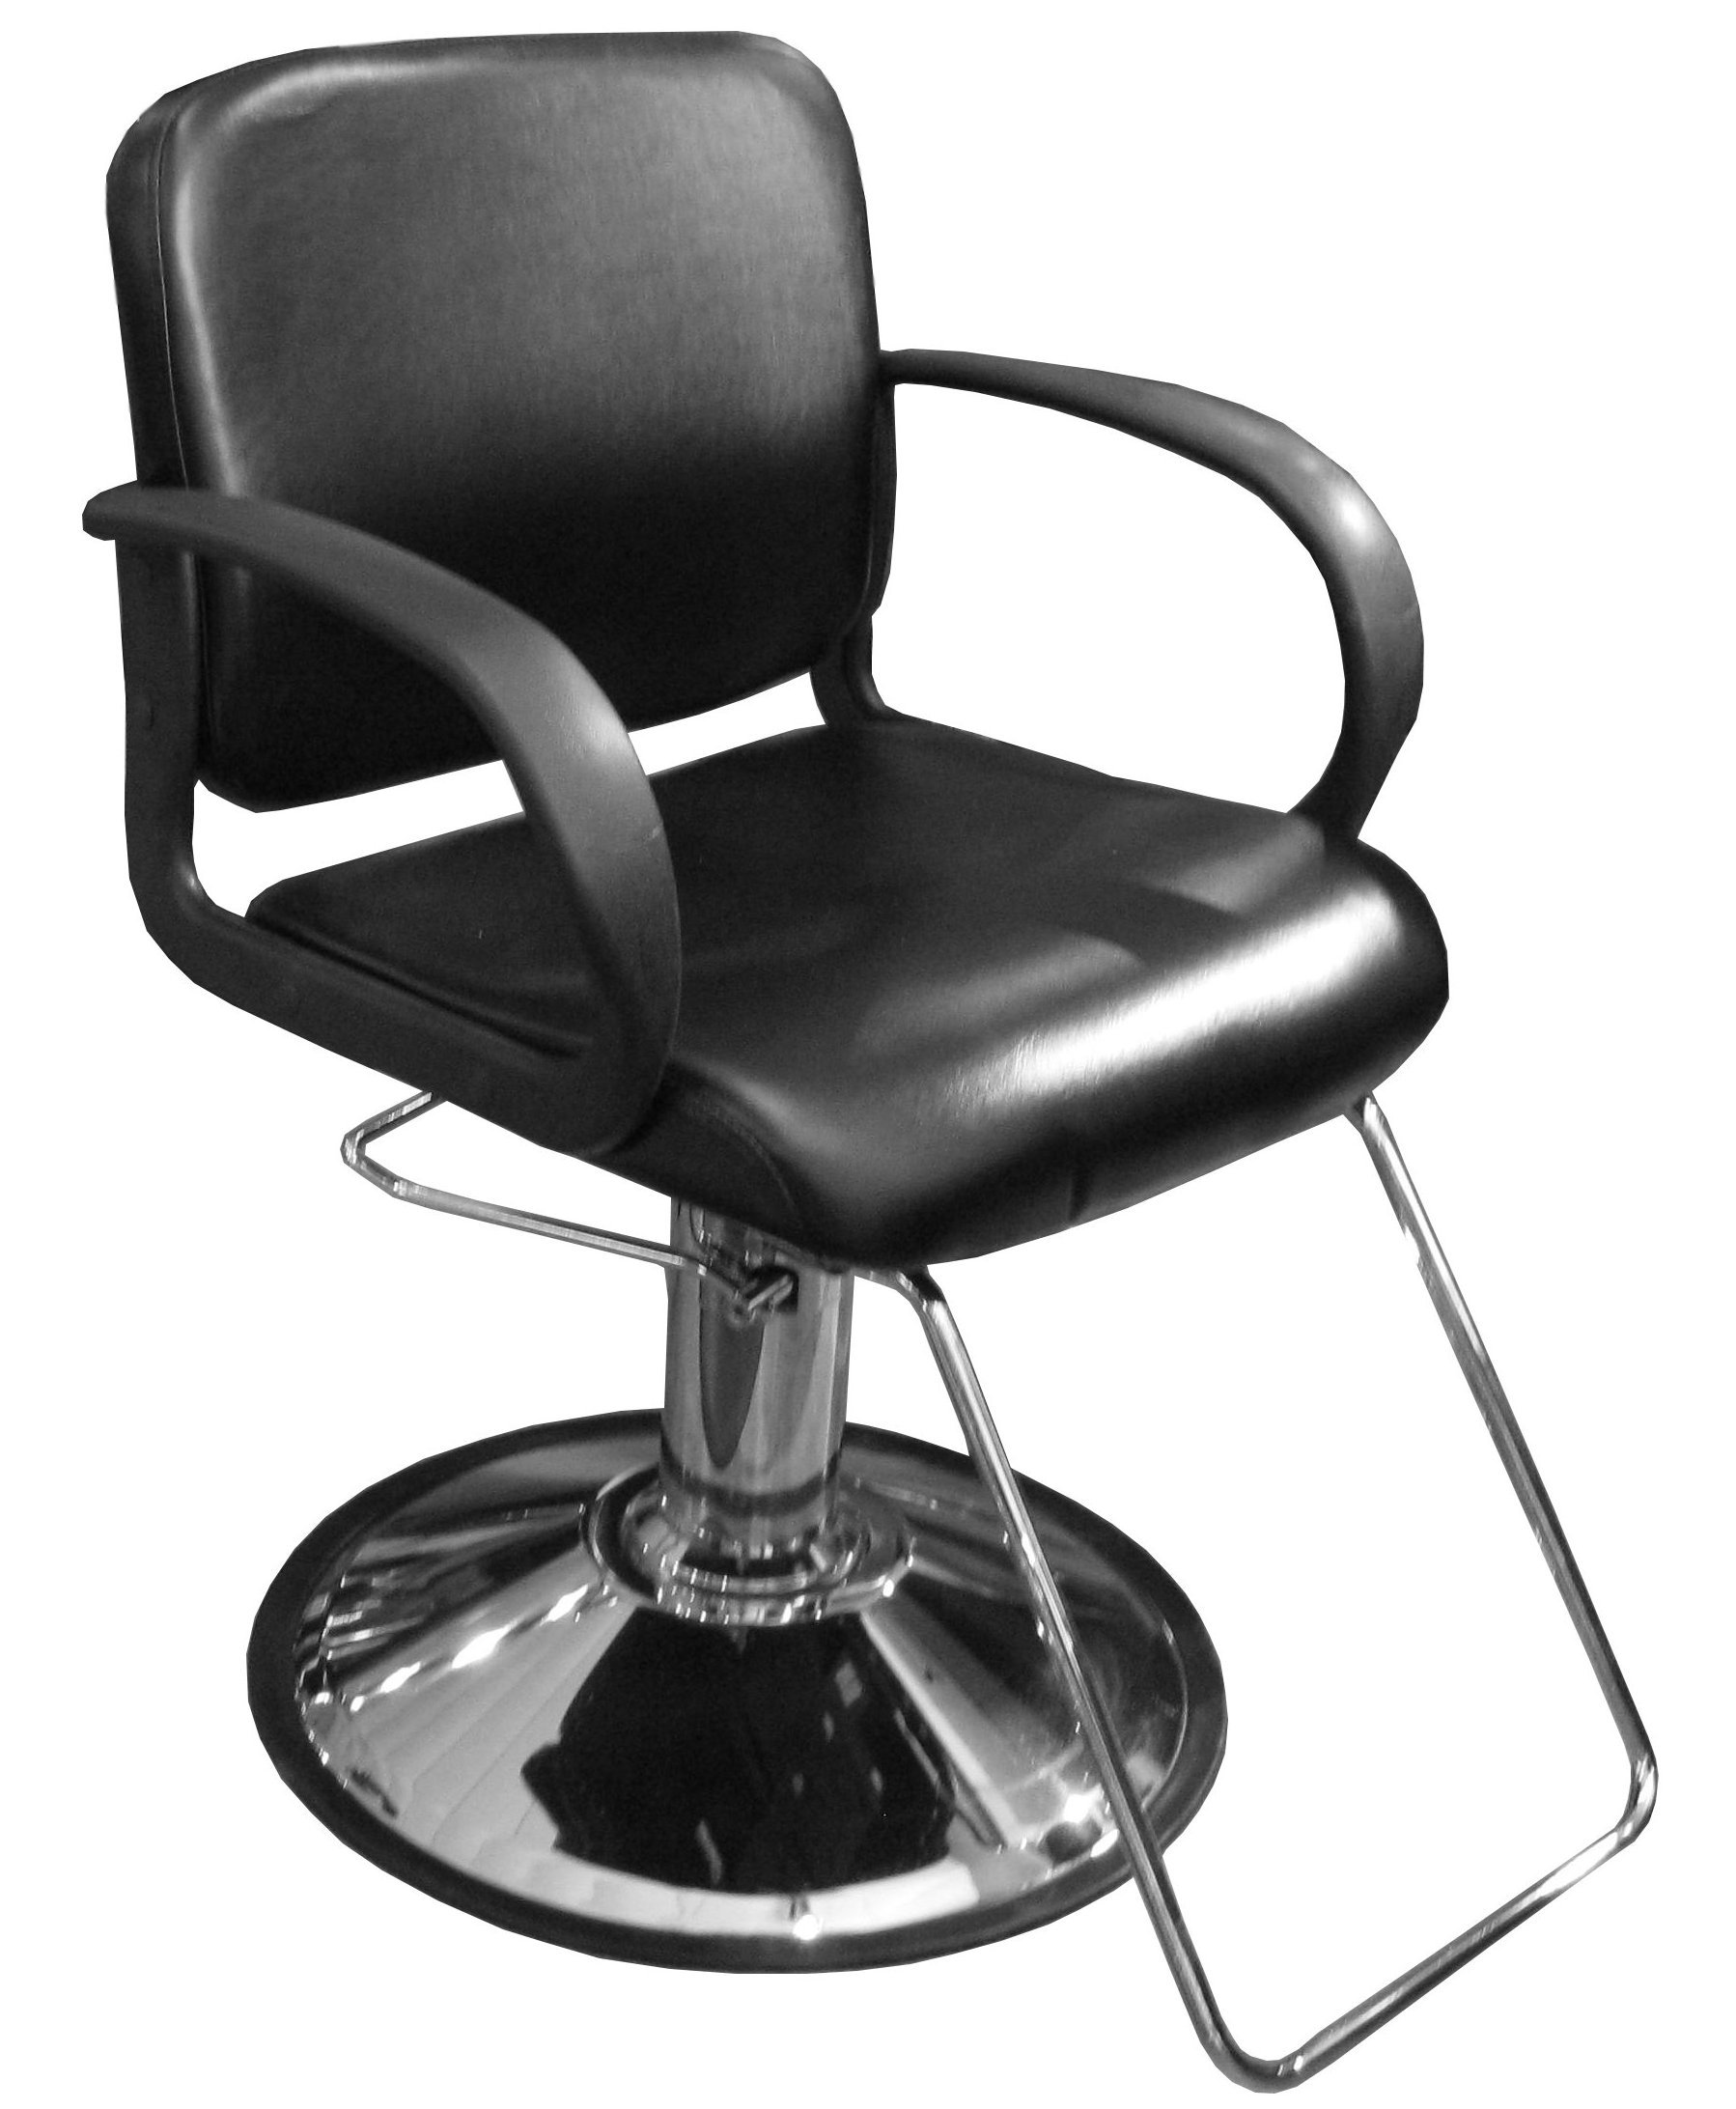 Captivating barber chairs for sale for salon furniture with cheap barber chairs for sale